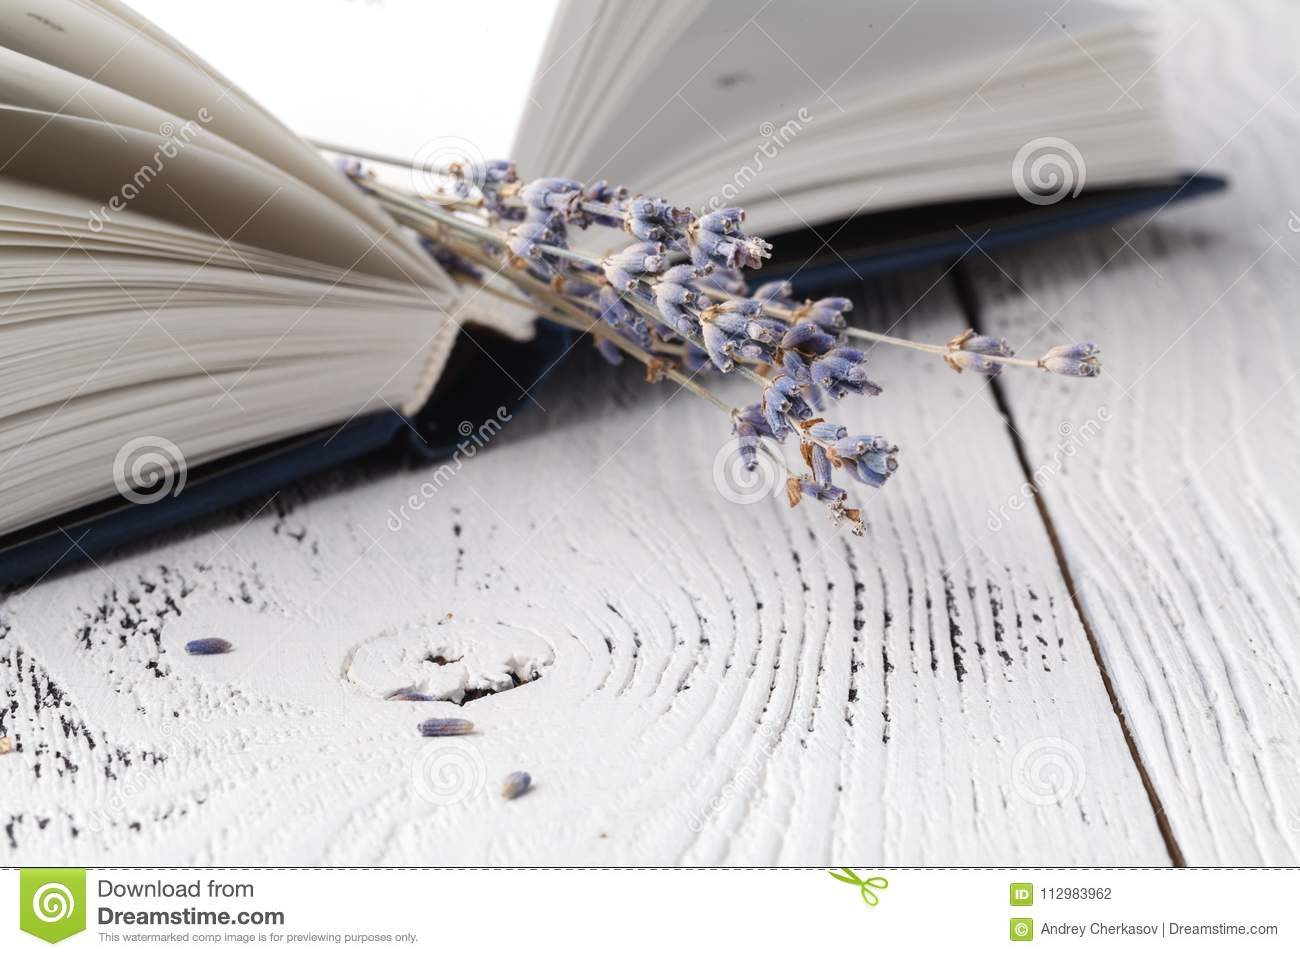 It`s memories, a bouquet of dry lavender and books